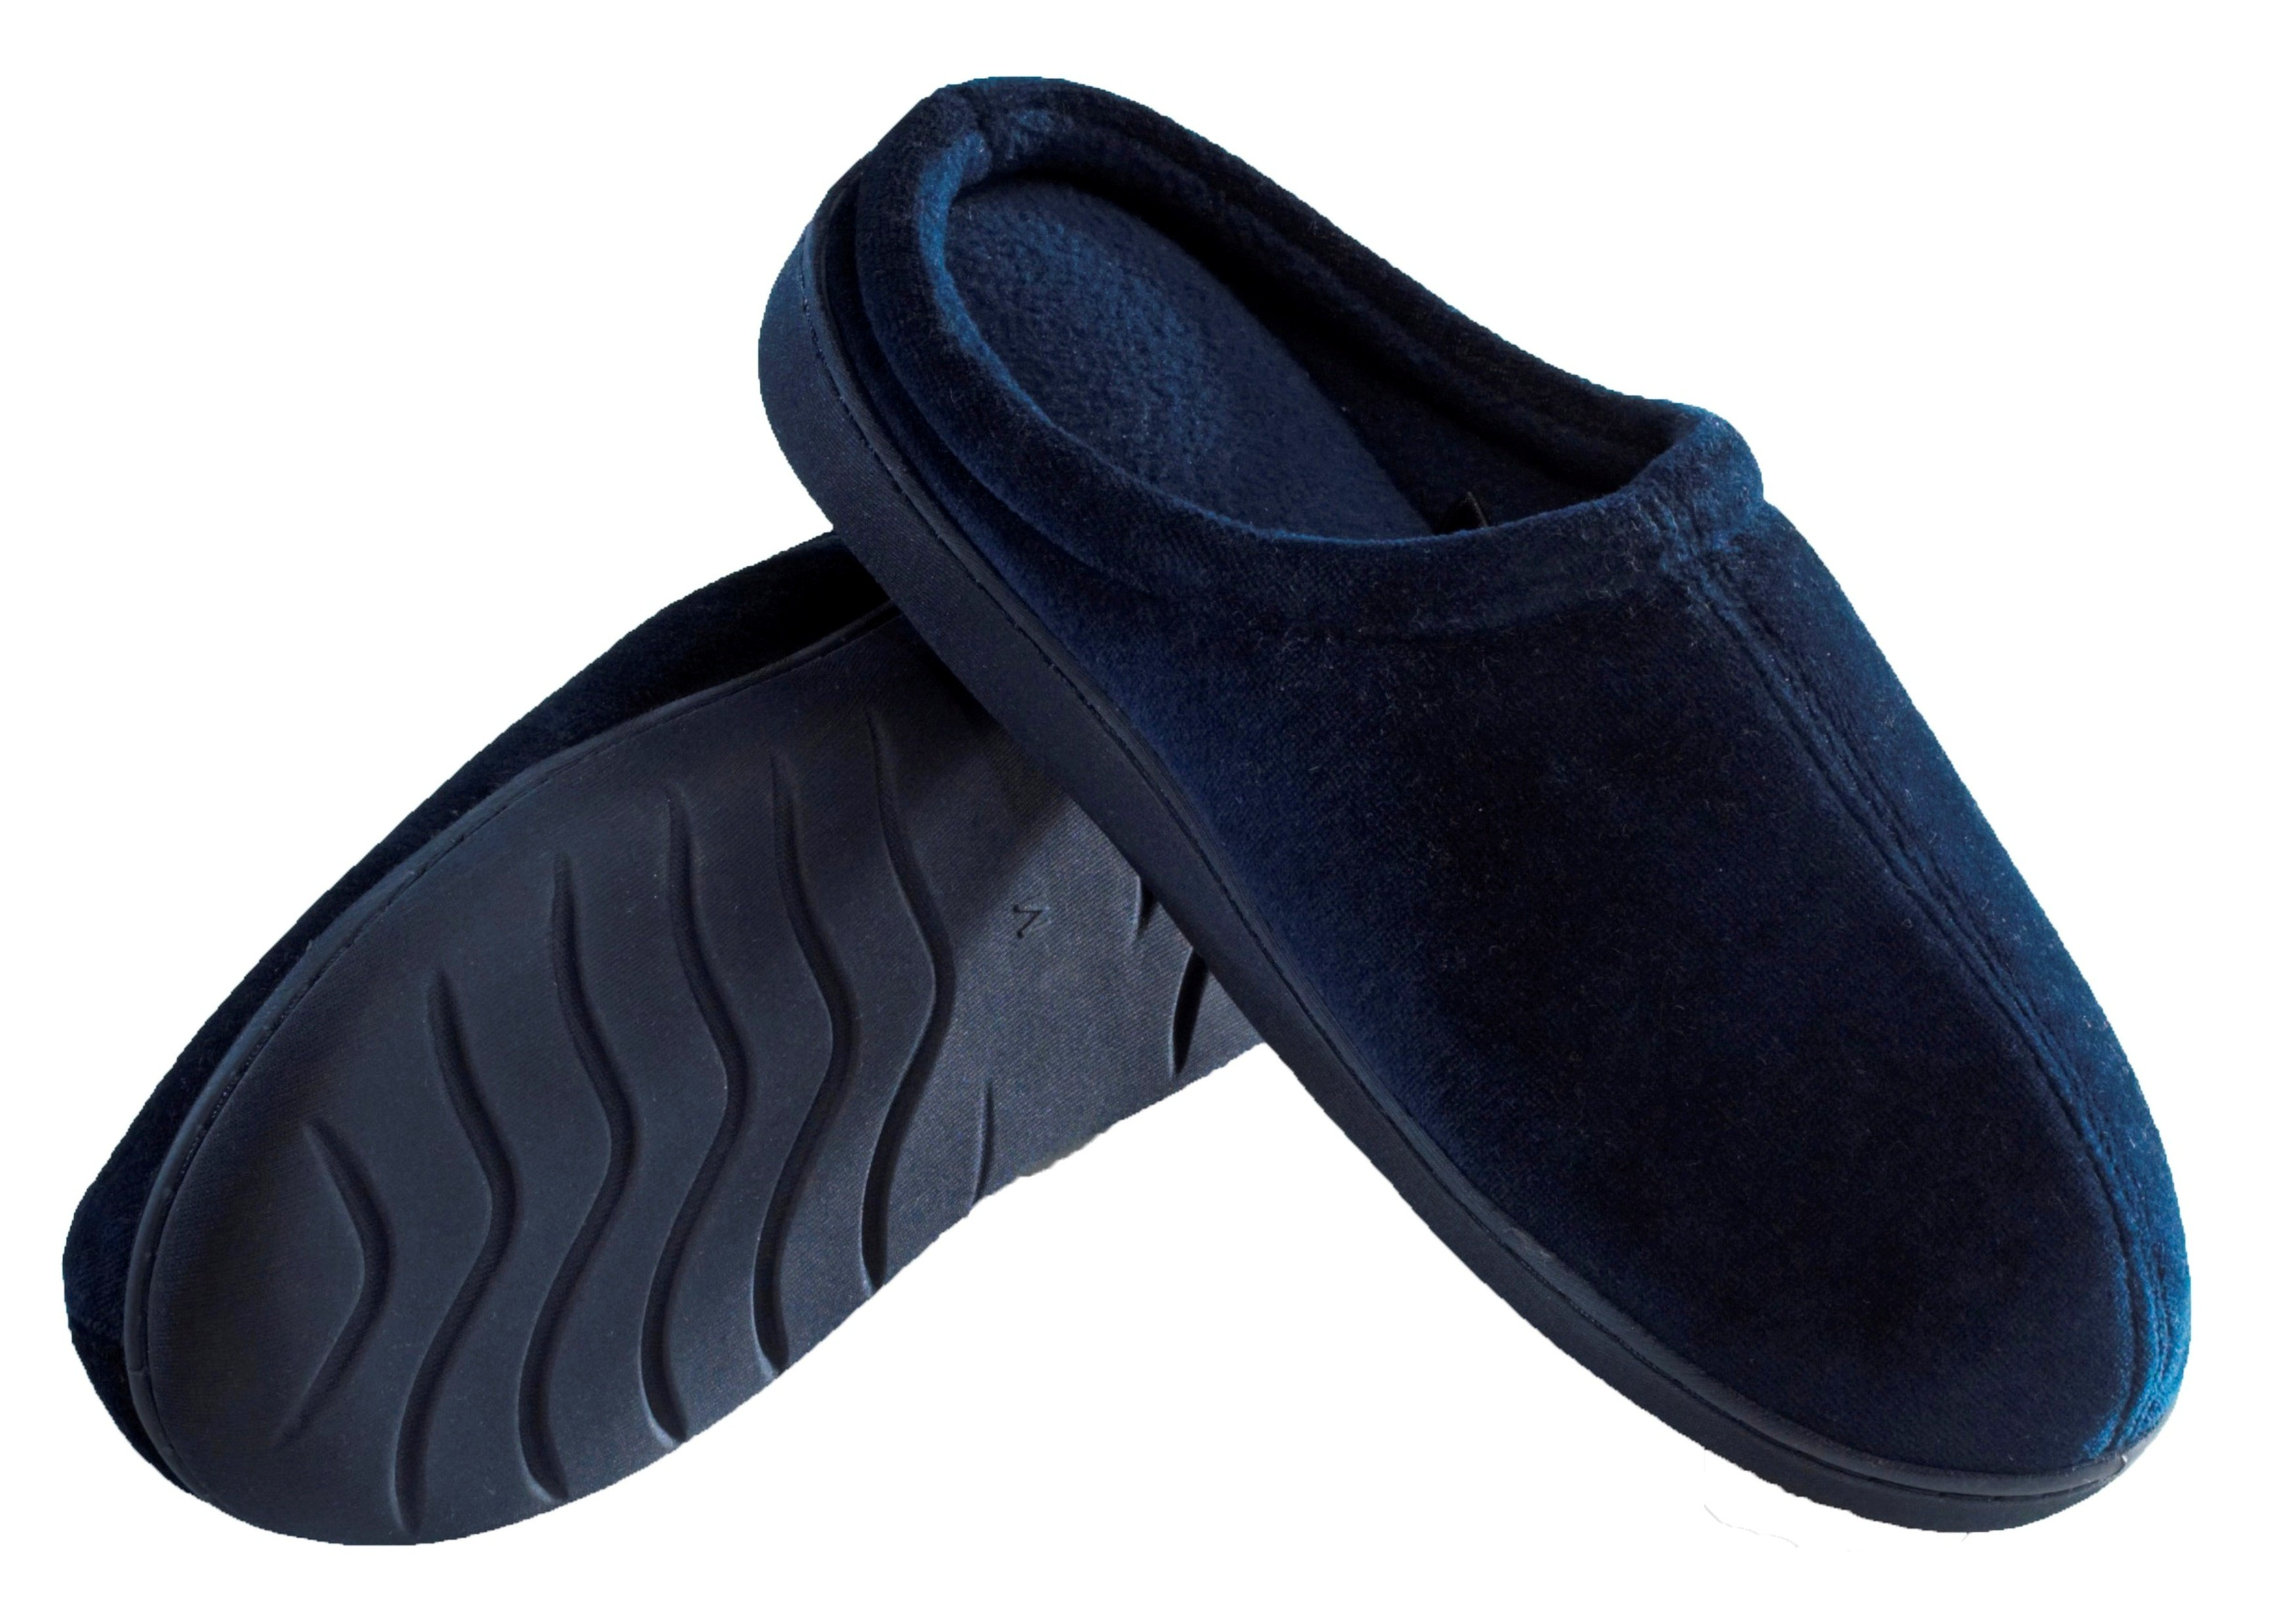 4967c3e7fe0 Memory Foam Slippers - The Most Comfortable Sleepers Made of Memory Foam